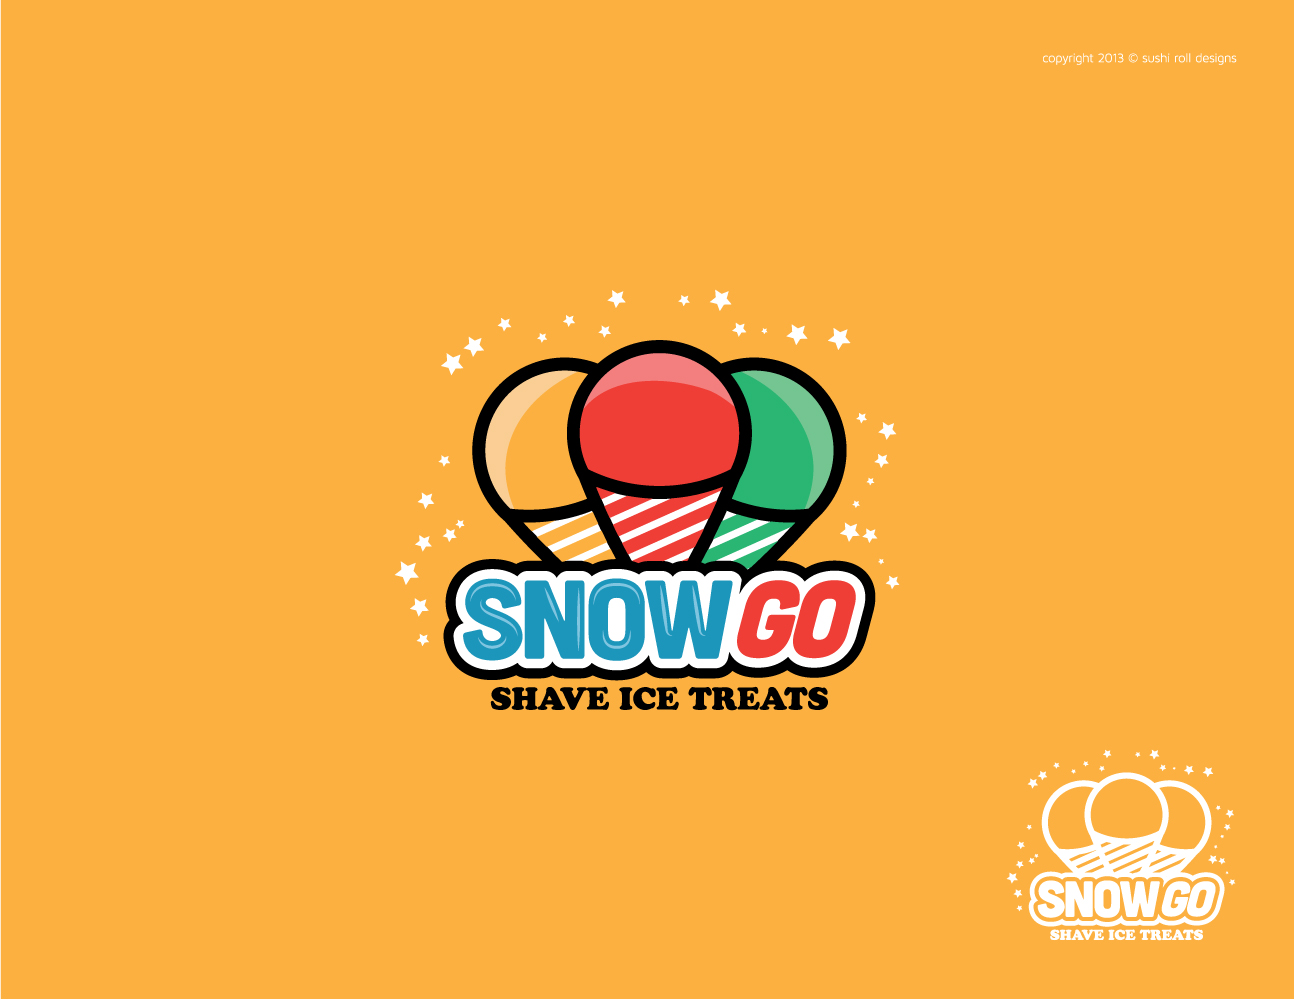 57 personable colorful logo designs for snow go shave ice